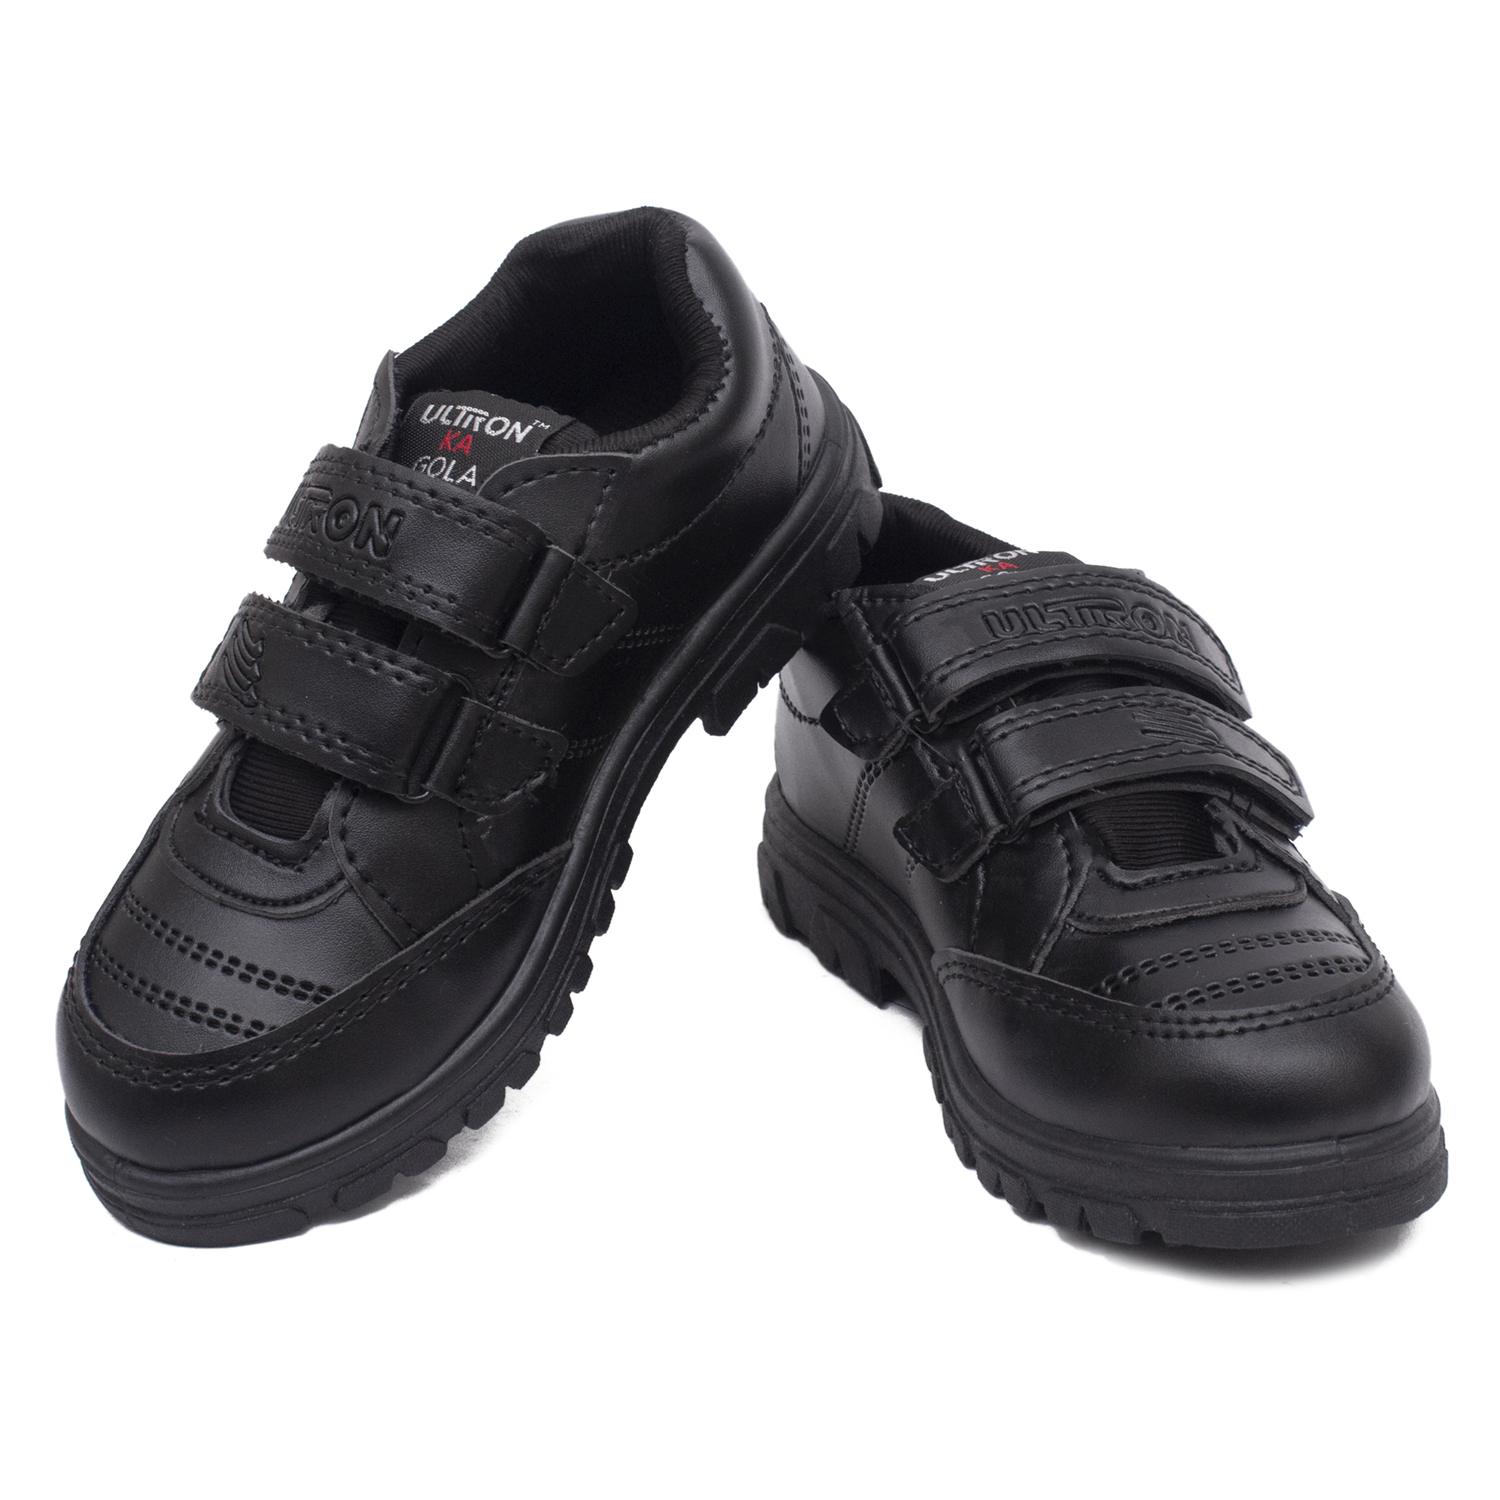 Foot Trends Gola Welcro School Shoes For Kids FT1-Gola-Welcro (BLACK,8-10,6 PAIR)